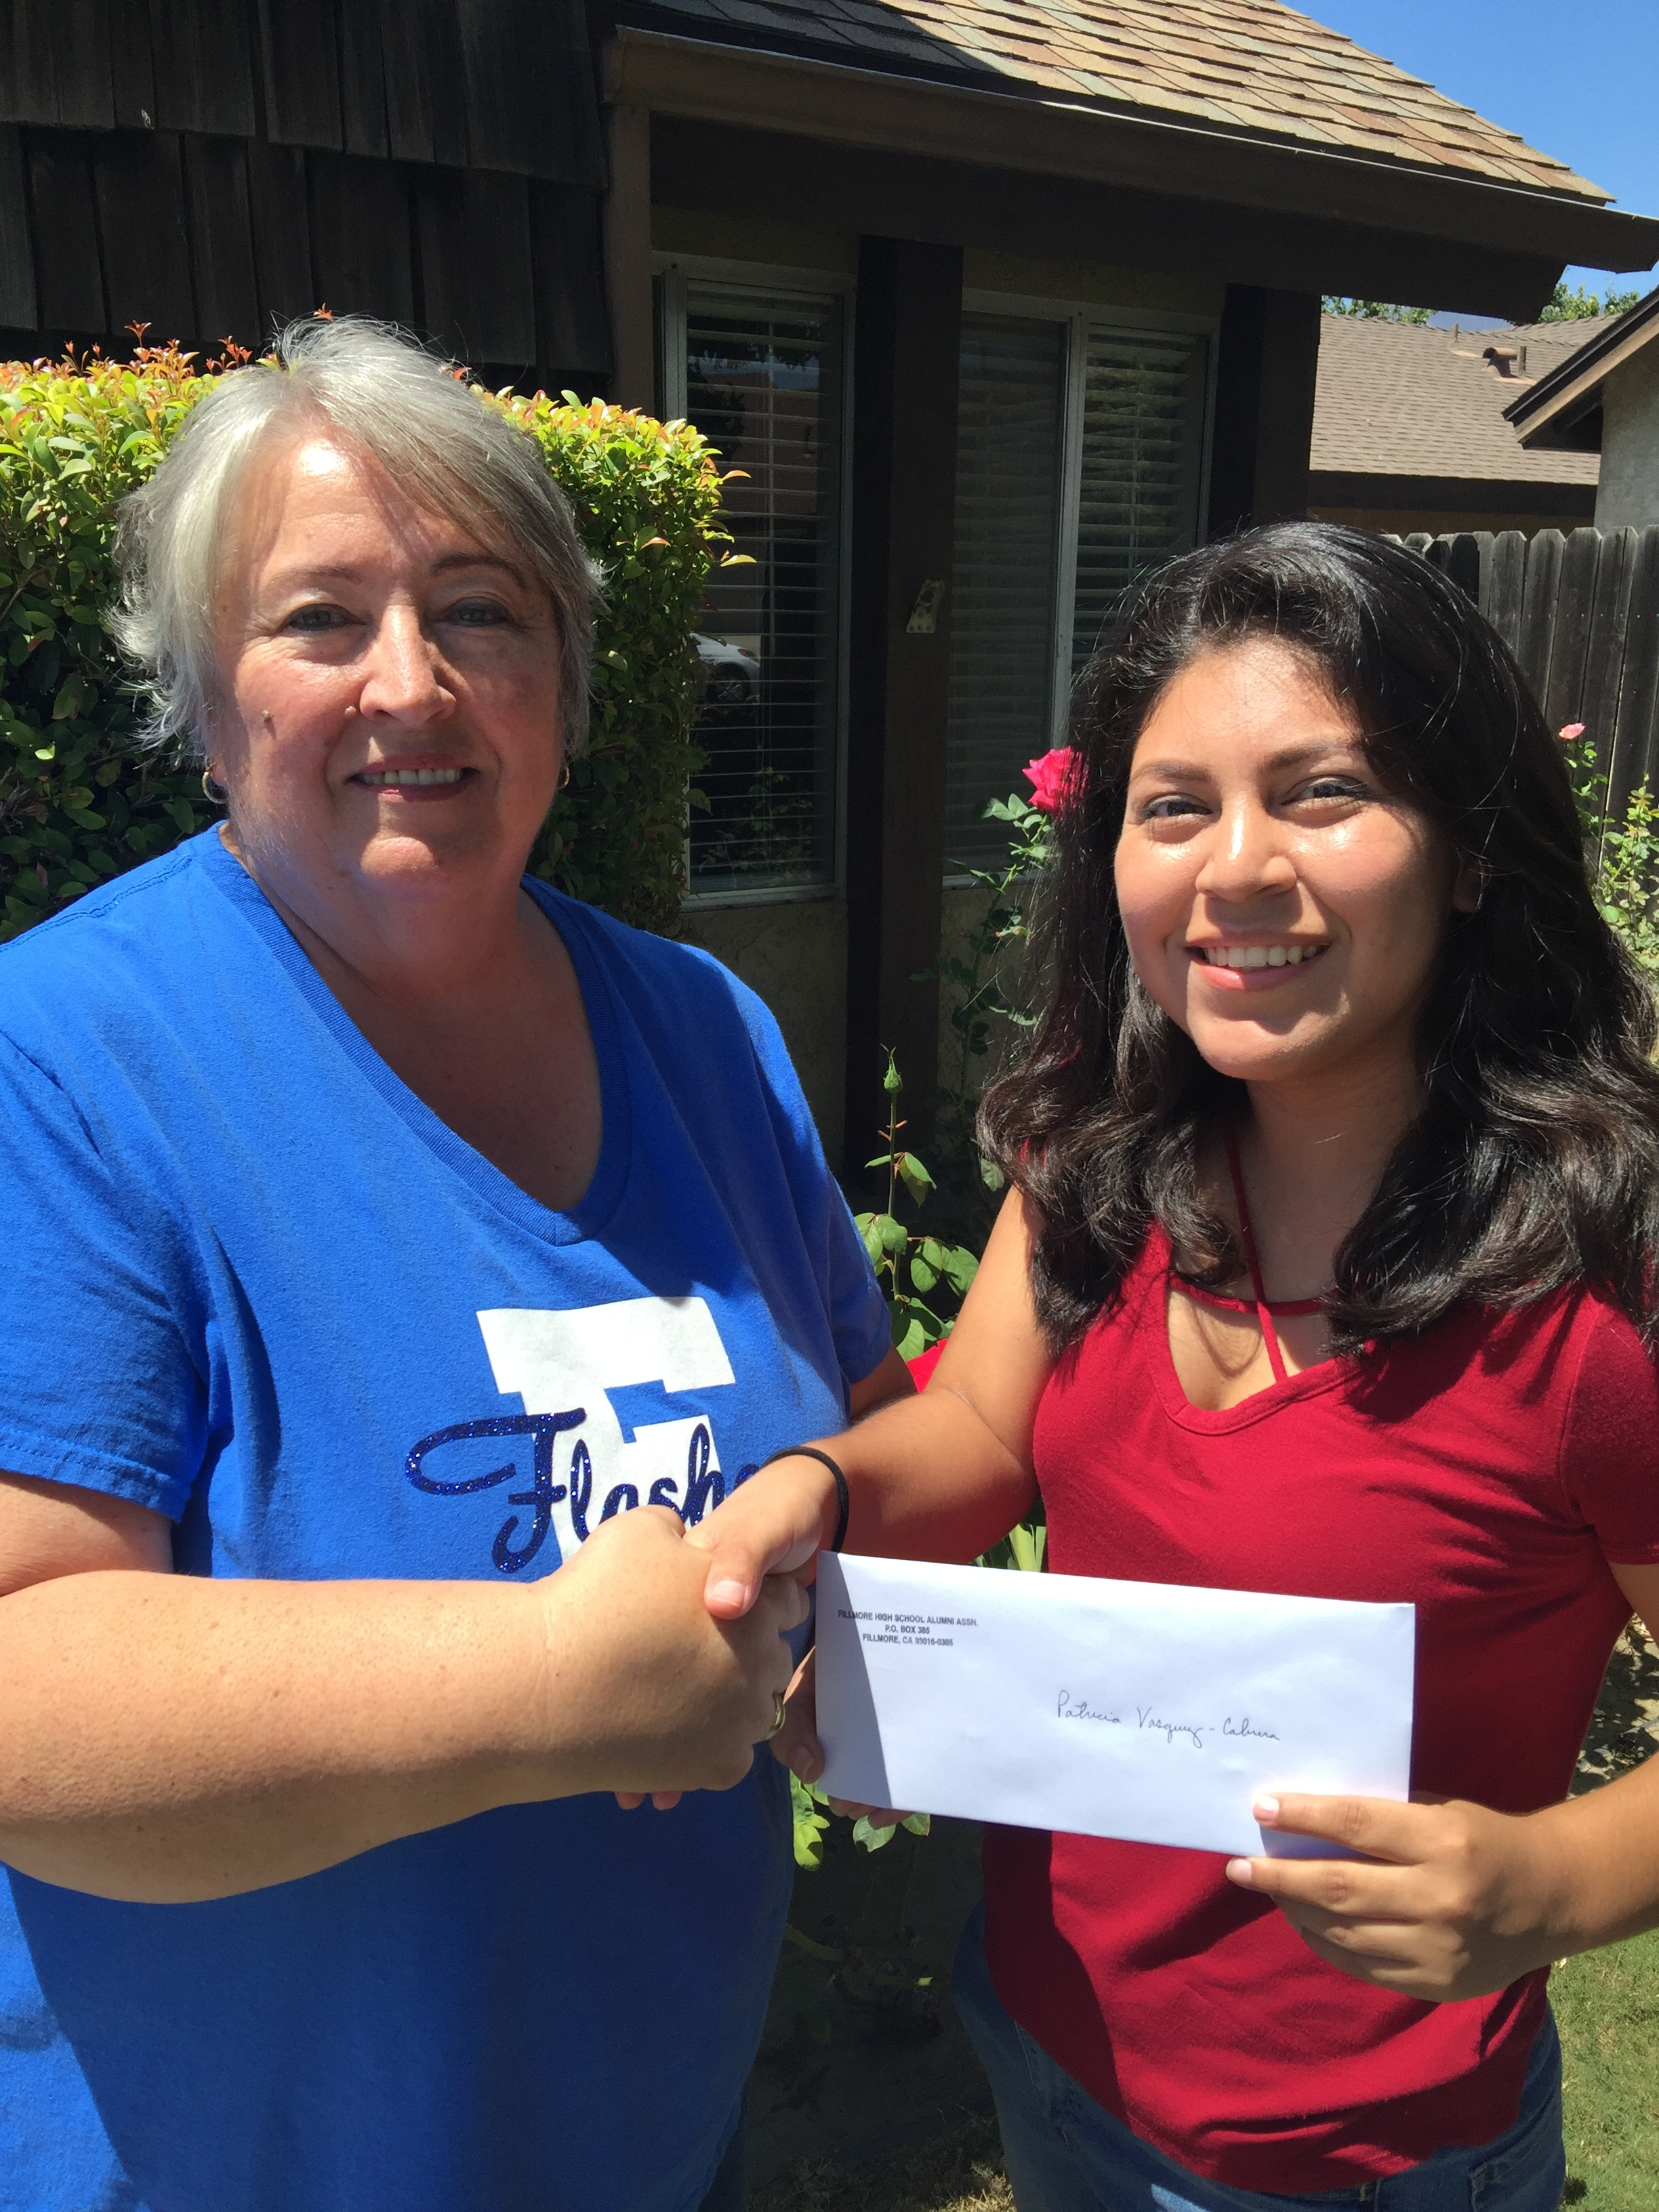 Patricia Vasquez-Cabrera '15 receives her Continuing Education Grant. Patricia is a Sophomore at University of California San Diego. She is Majoring in Urban Studies and Planning. She is on schedule to Graduate in 2019. Congrats Patricia!